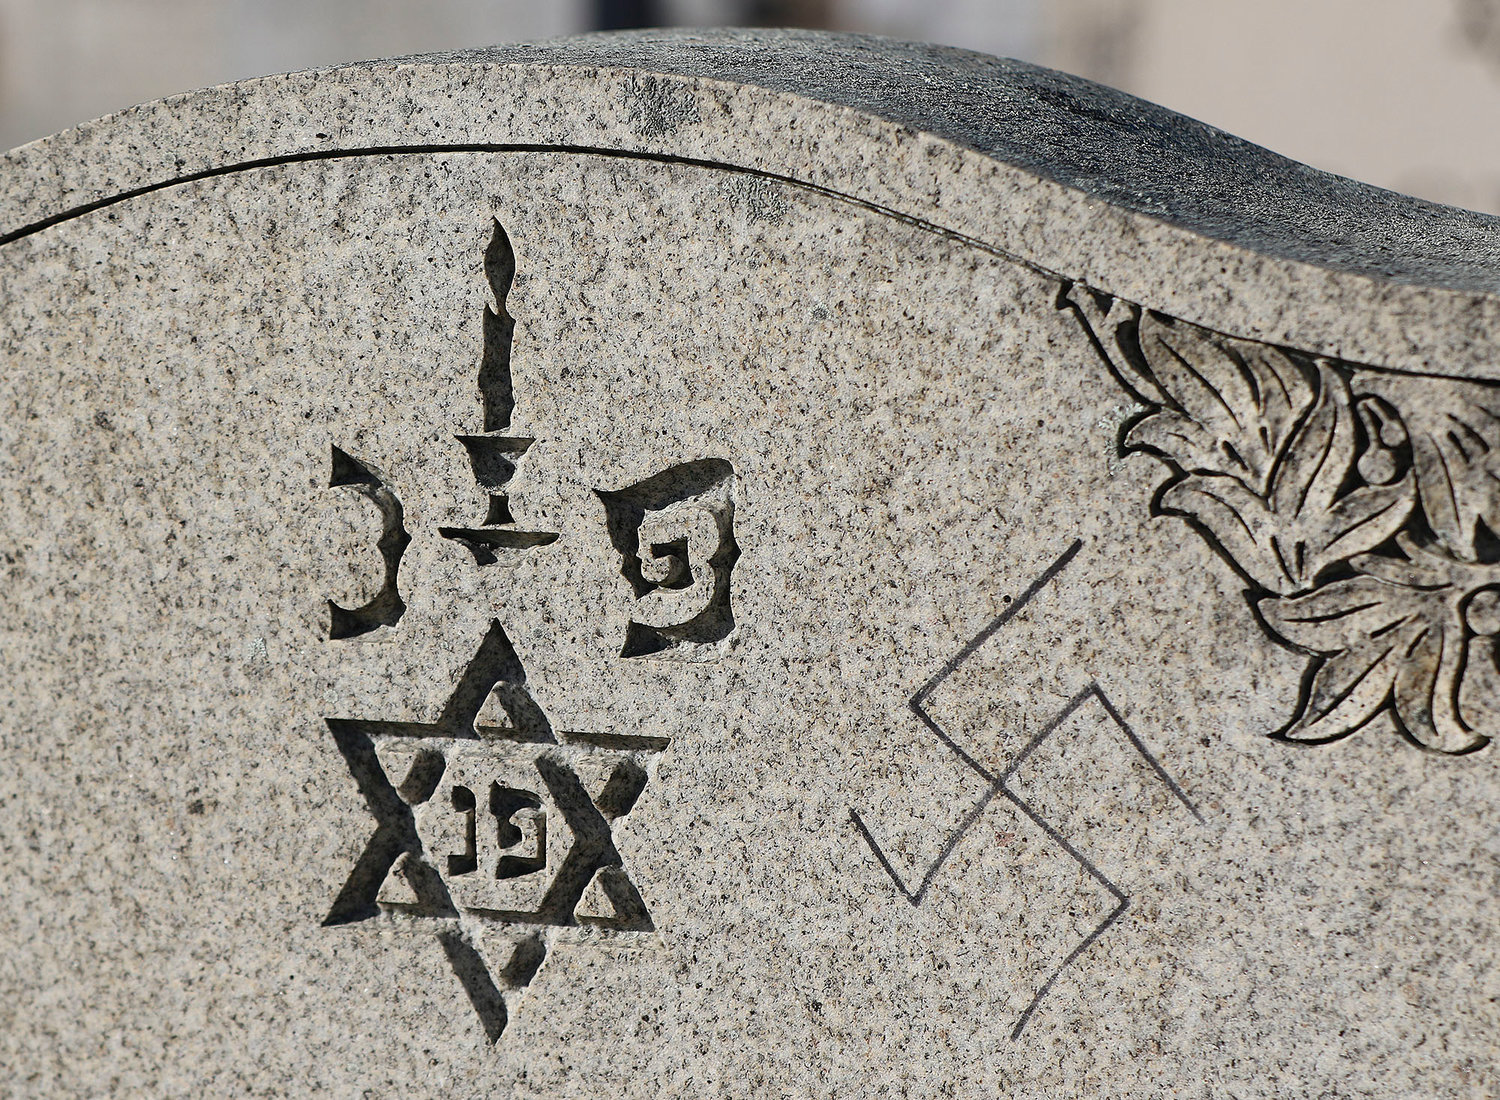 One of the vandalized grave stones.